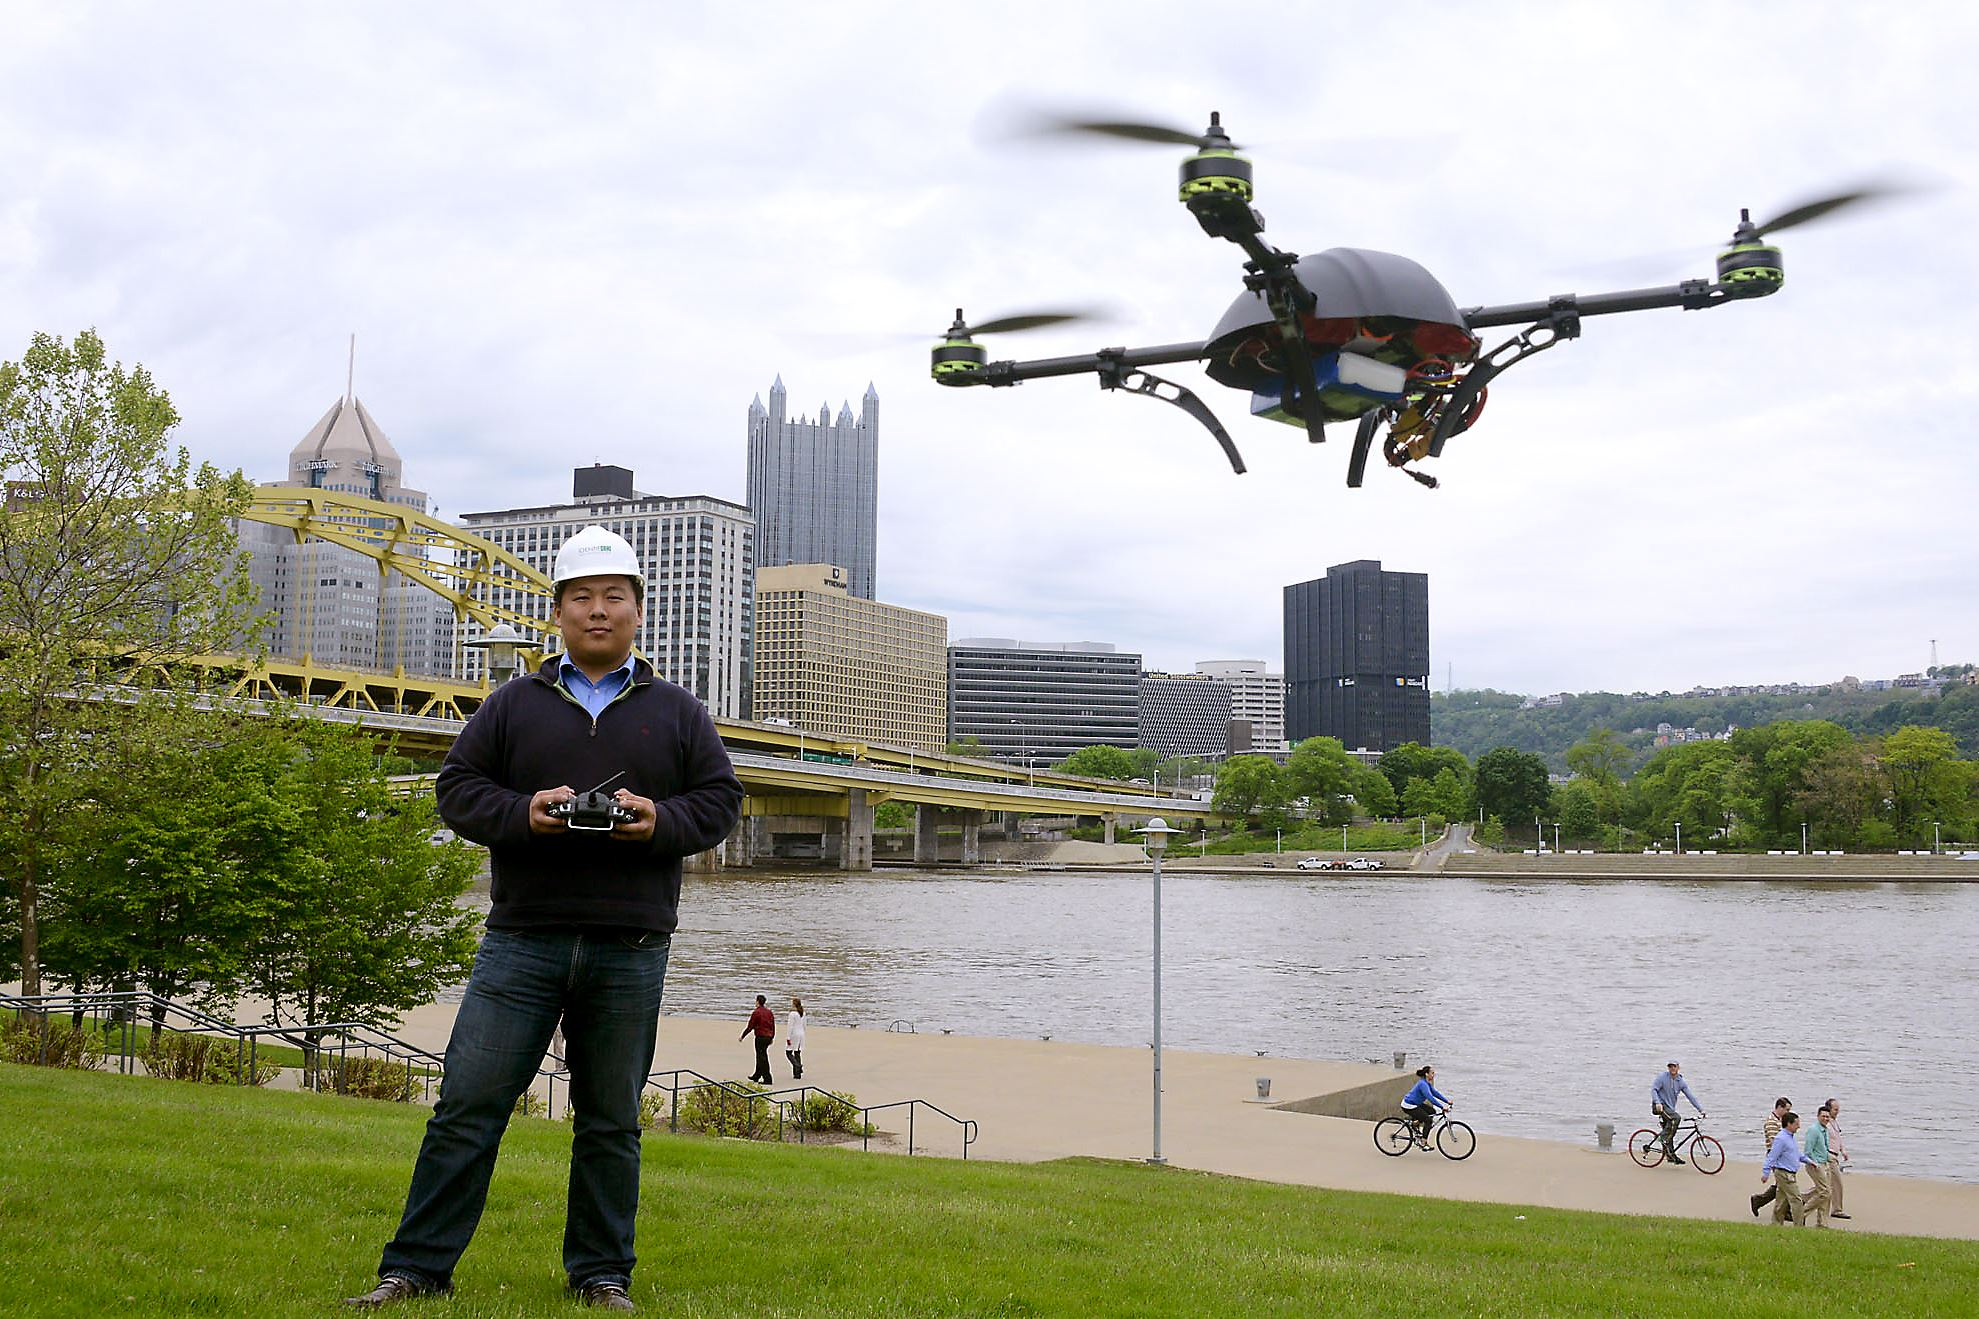 20150129dsDrones Dick Zhang, CEO of Identified Technologies, flies one of the company's drones on the North Shore. The drone is a flying robot customized to collect images, data or gas readings.